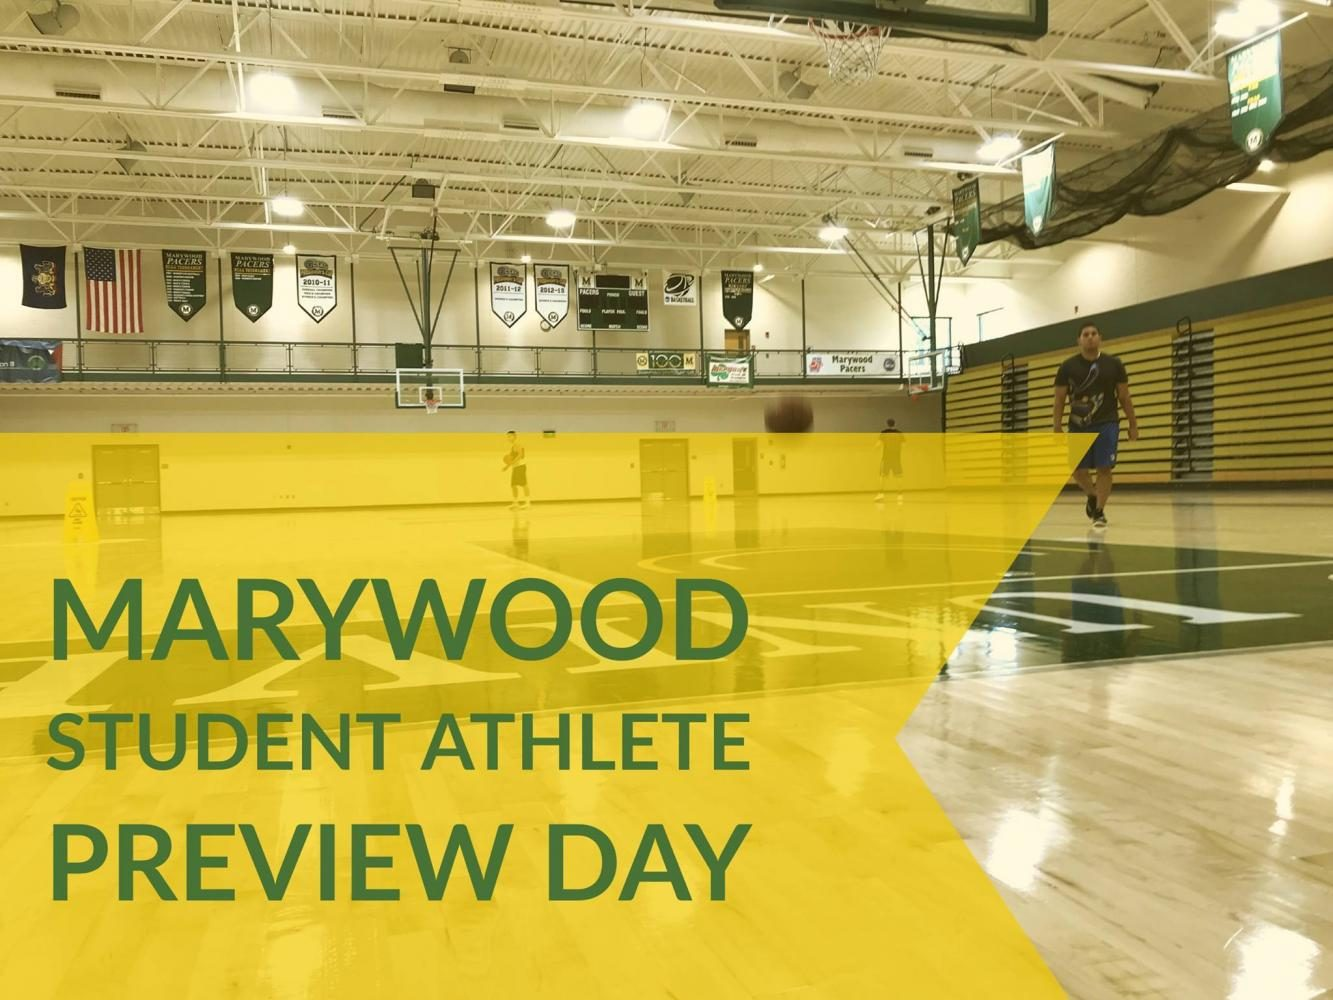 Student+Athlete+Preview+Day+to+bring+in+prospective+athletes